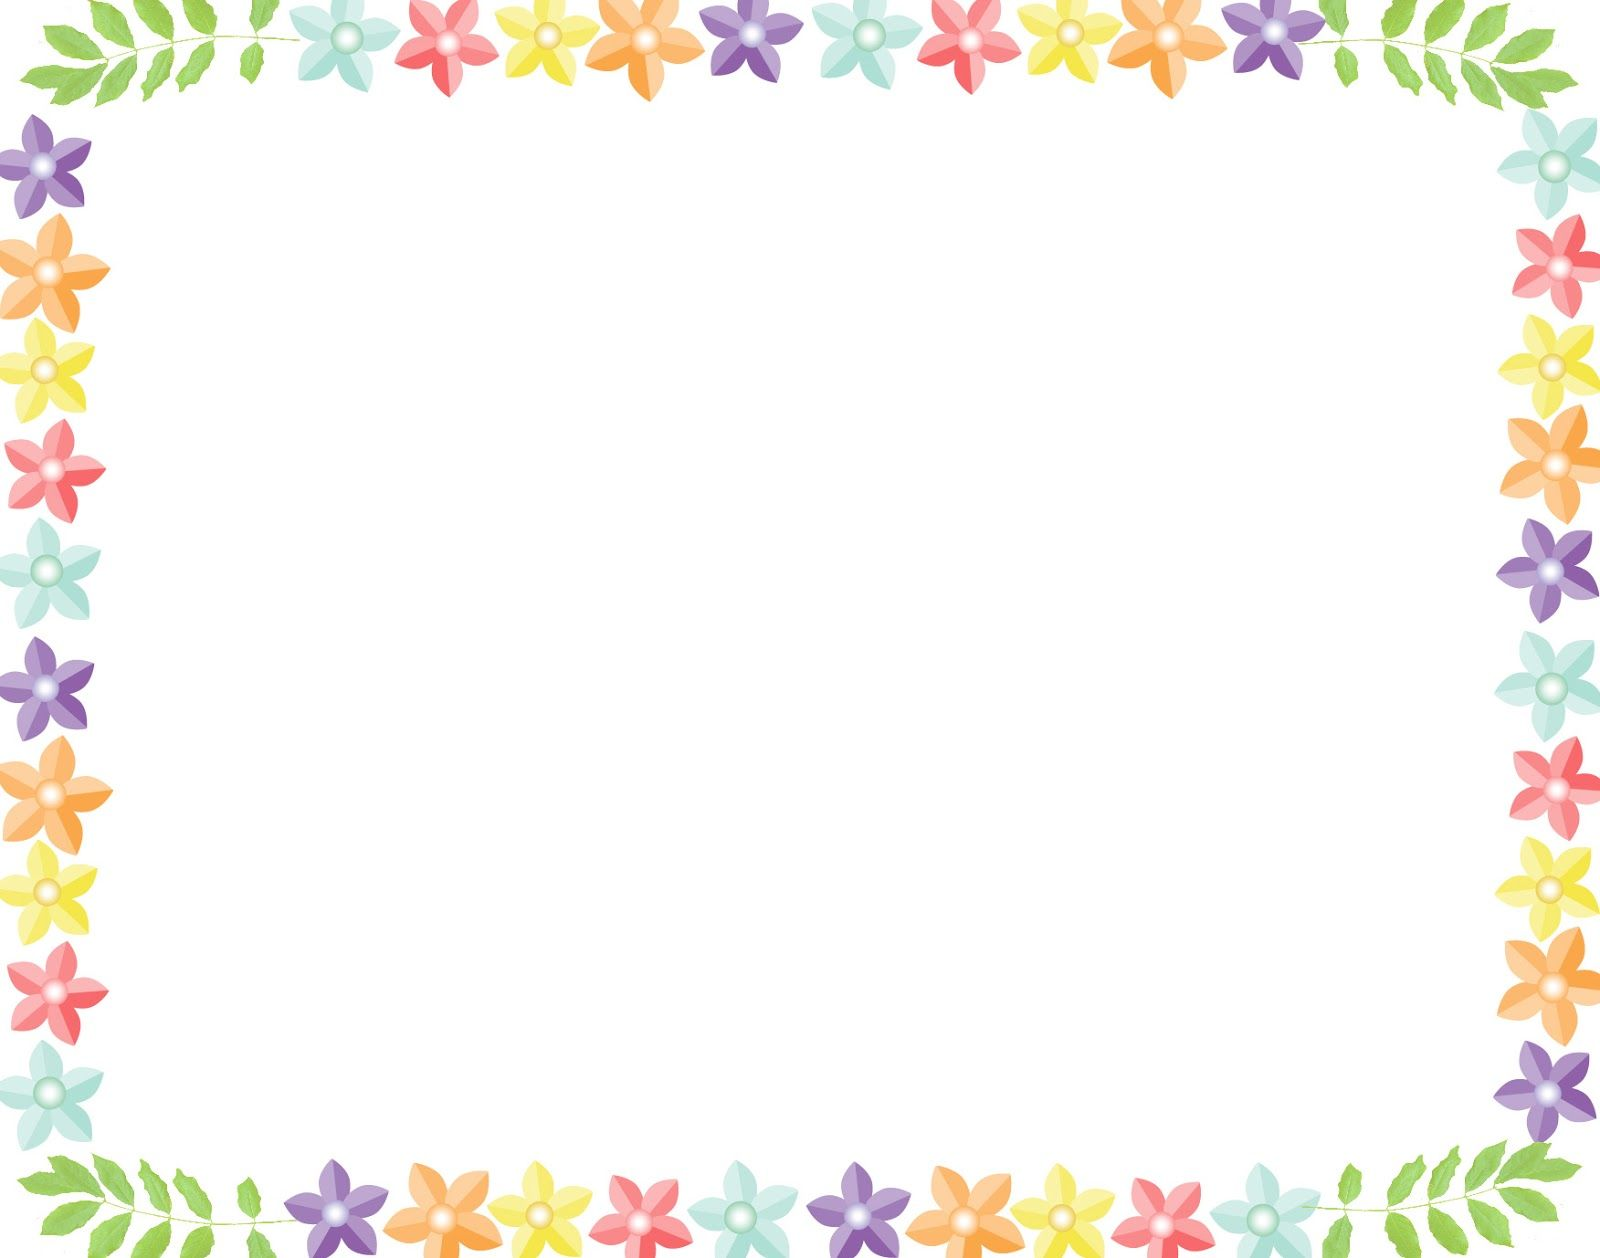 White Backgrounds With Colorful Borders borders | Backg...